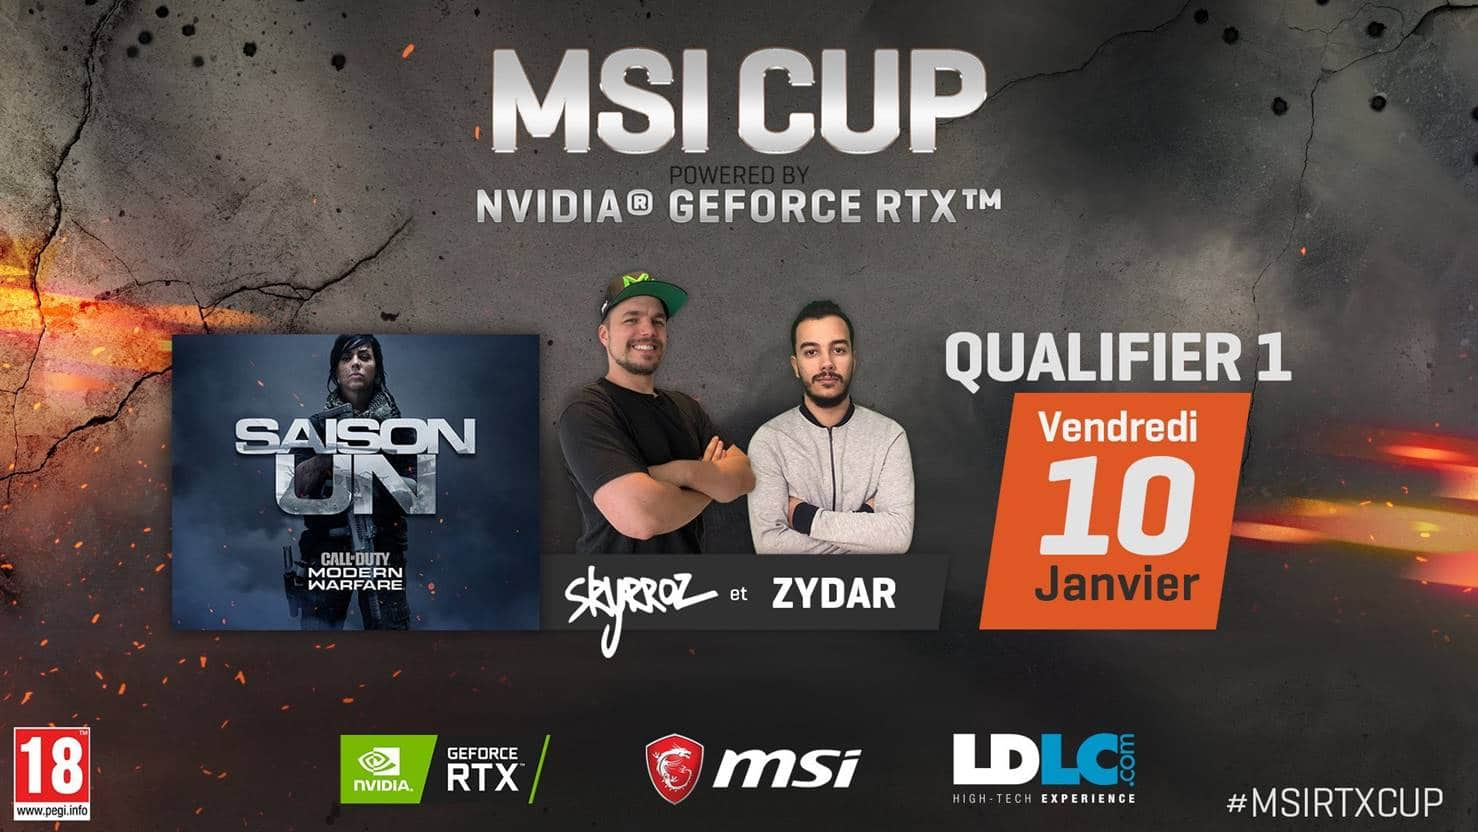 MSI CUP powered by NVIDIA Geforce RTX